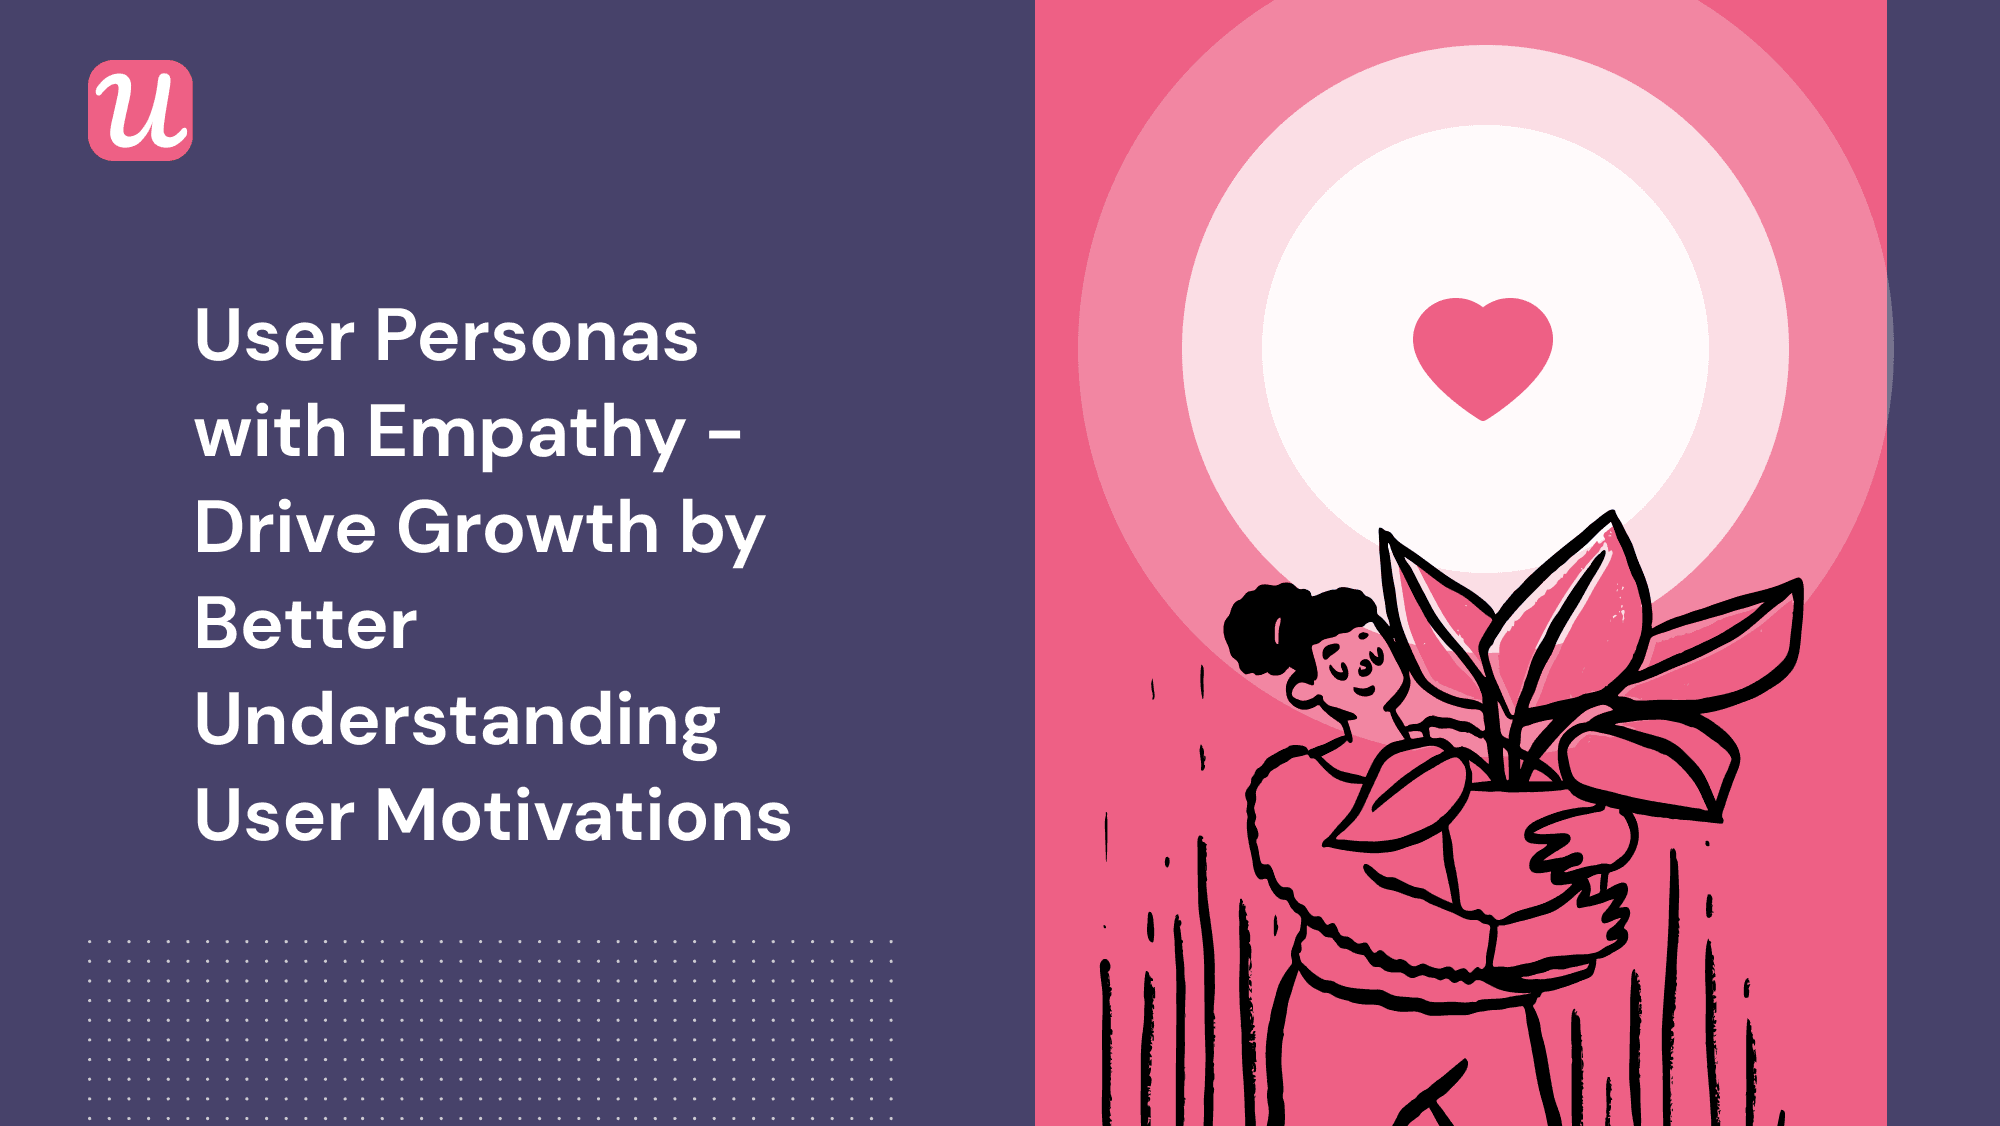 User Personas with Empathy - How to Drive Growth and Improve Product Experience by Better Understanding User Motivations